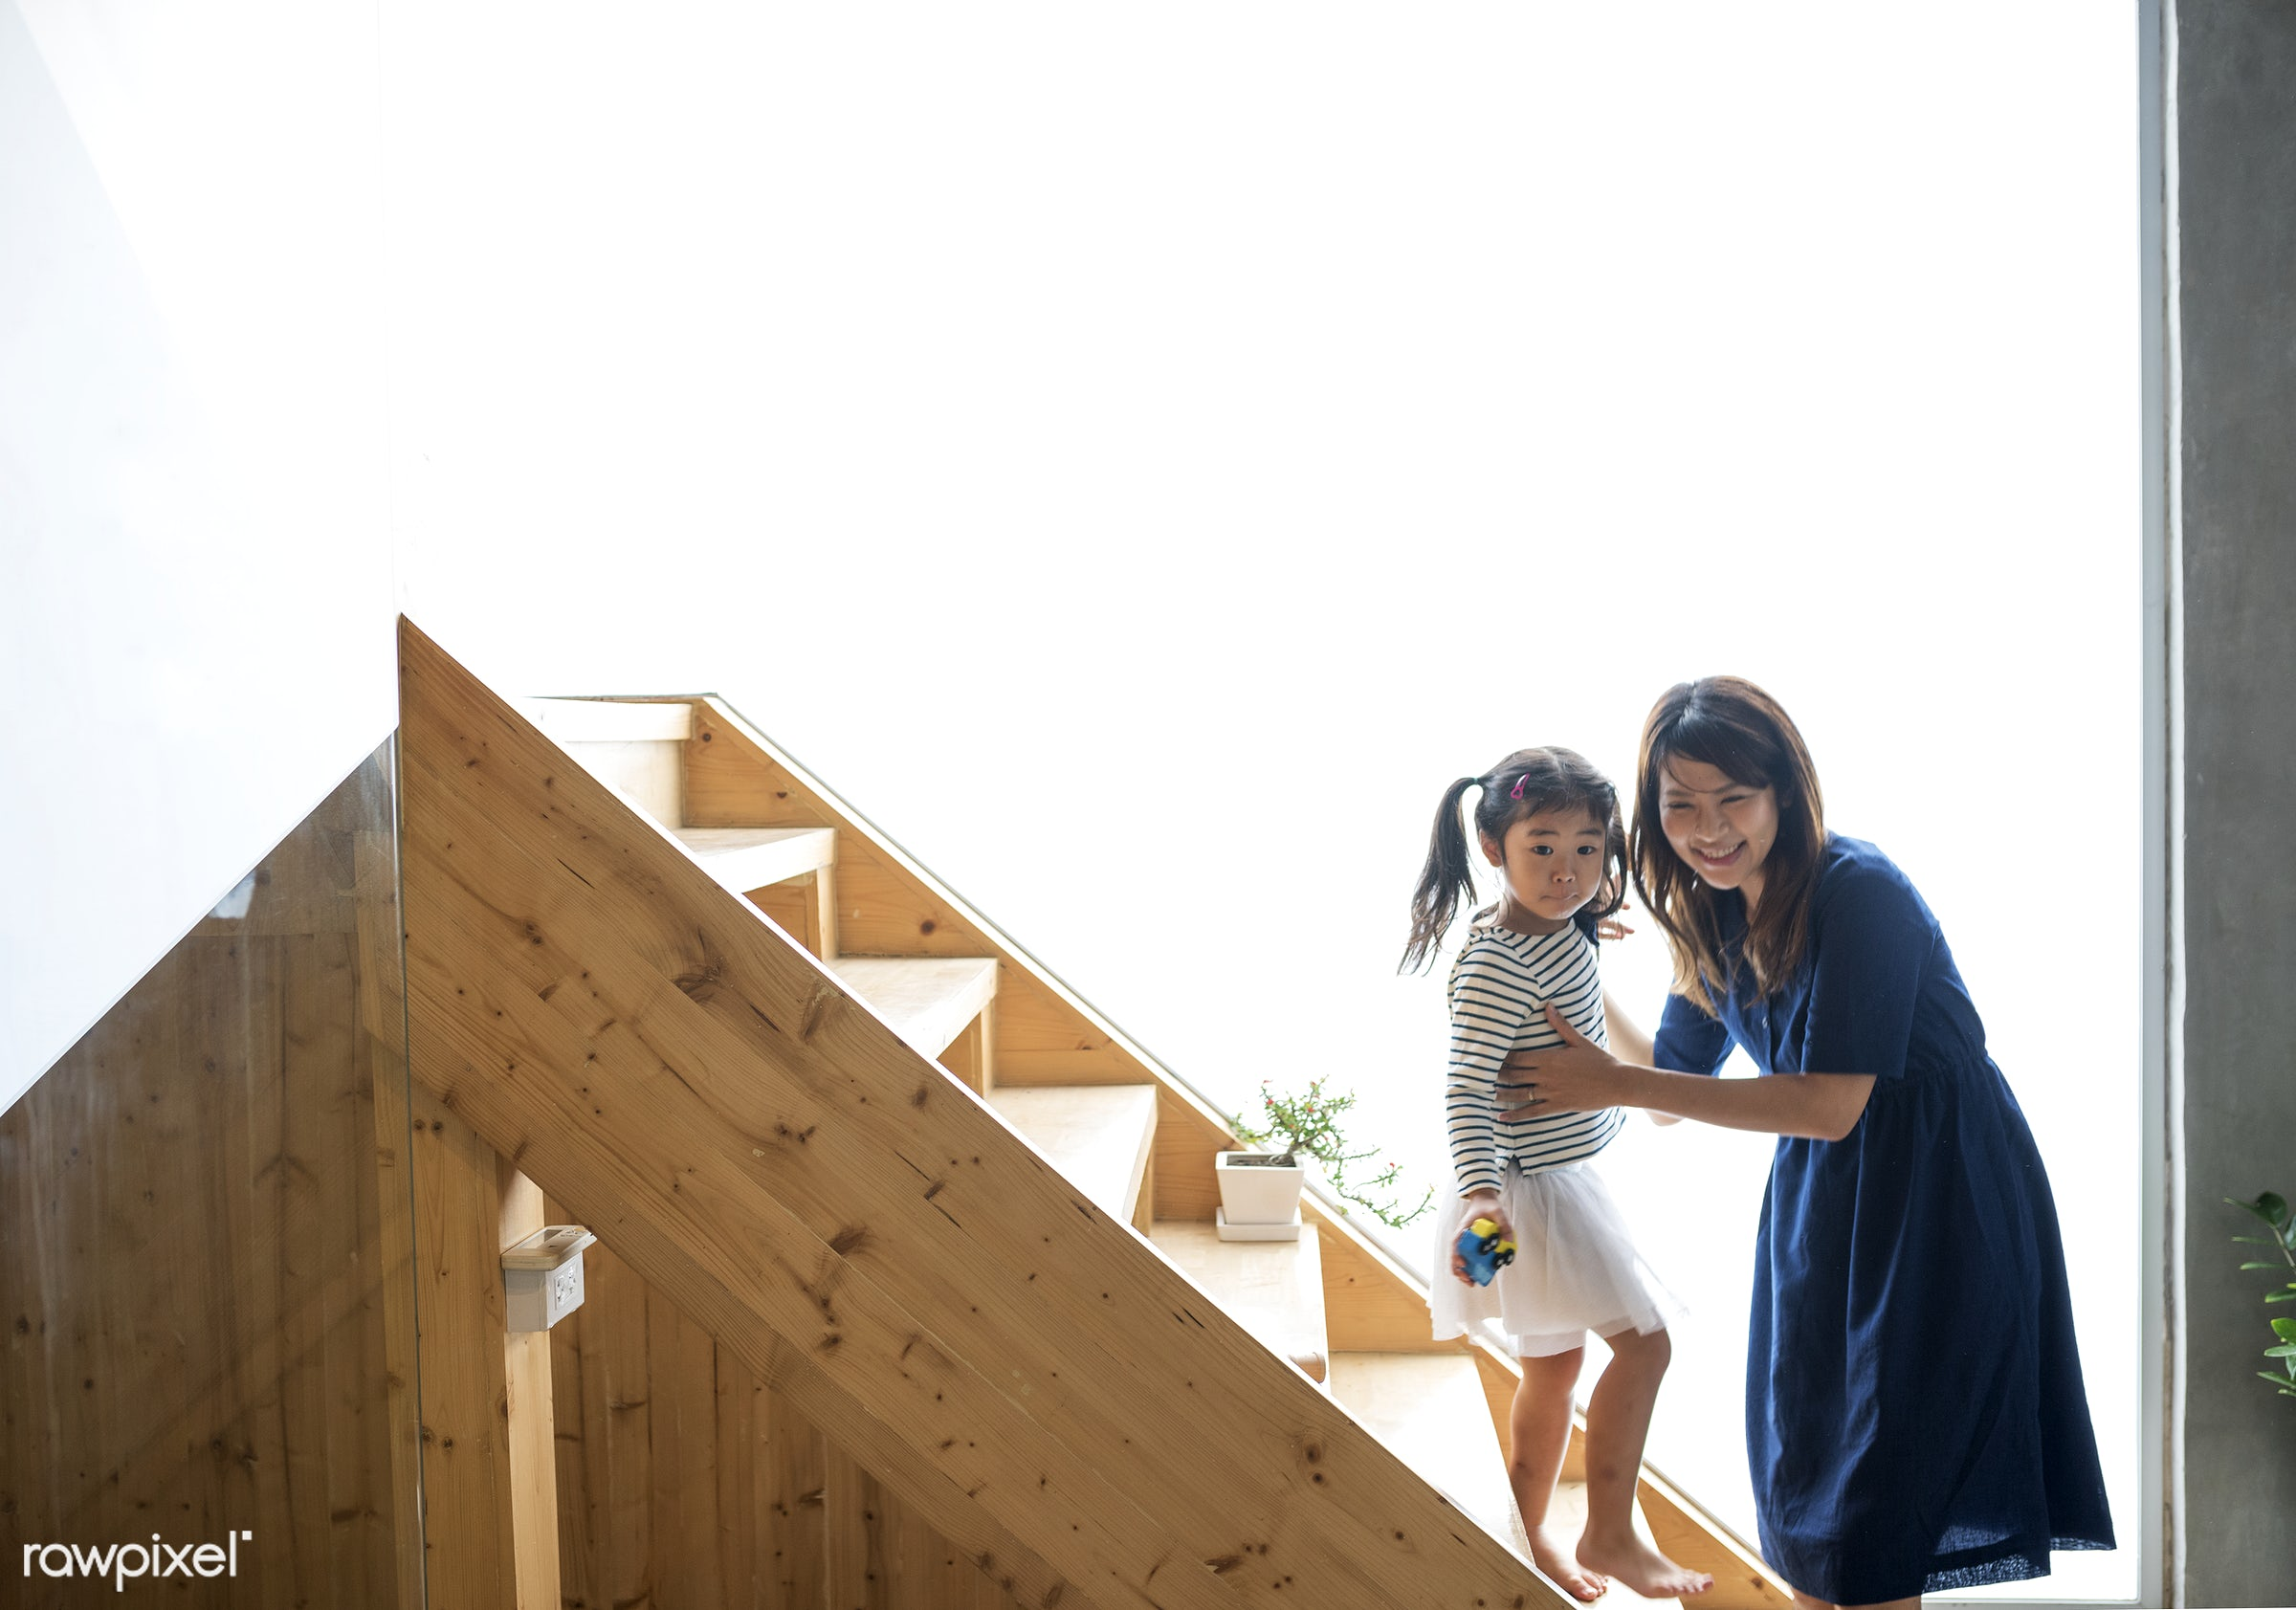 asia, asian, bonding, casual, child, childhood, daughter, family, girl, happiness, home, japan, japanese, kid, lifestyle,...